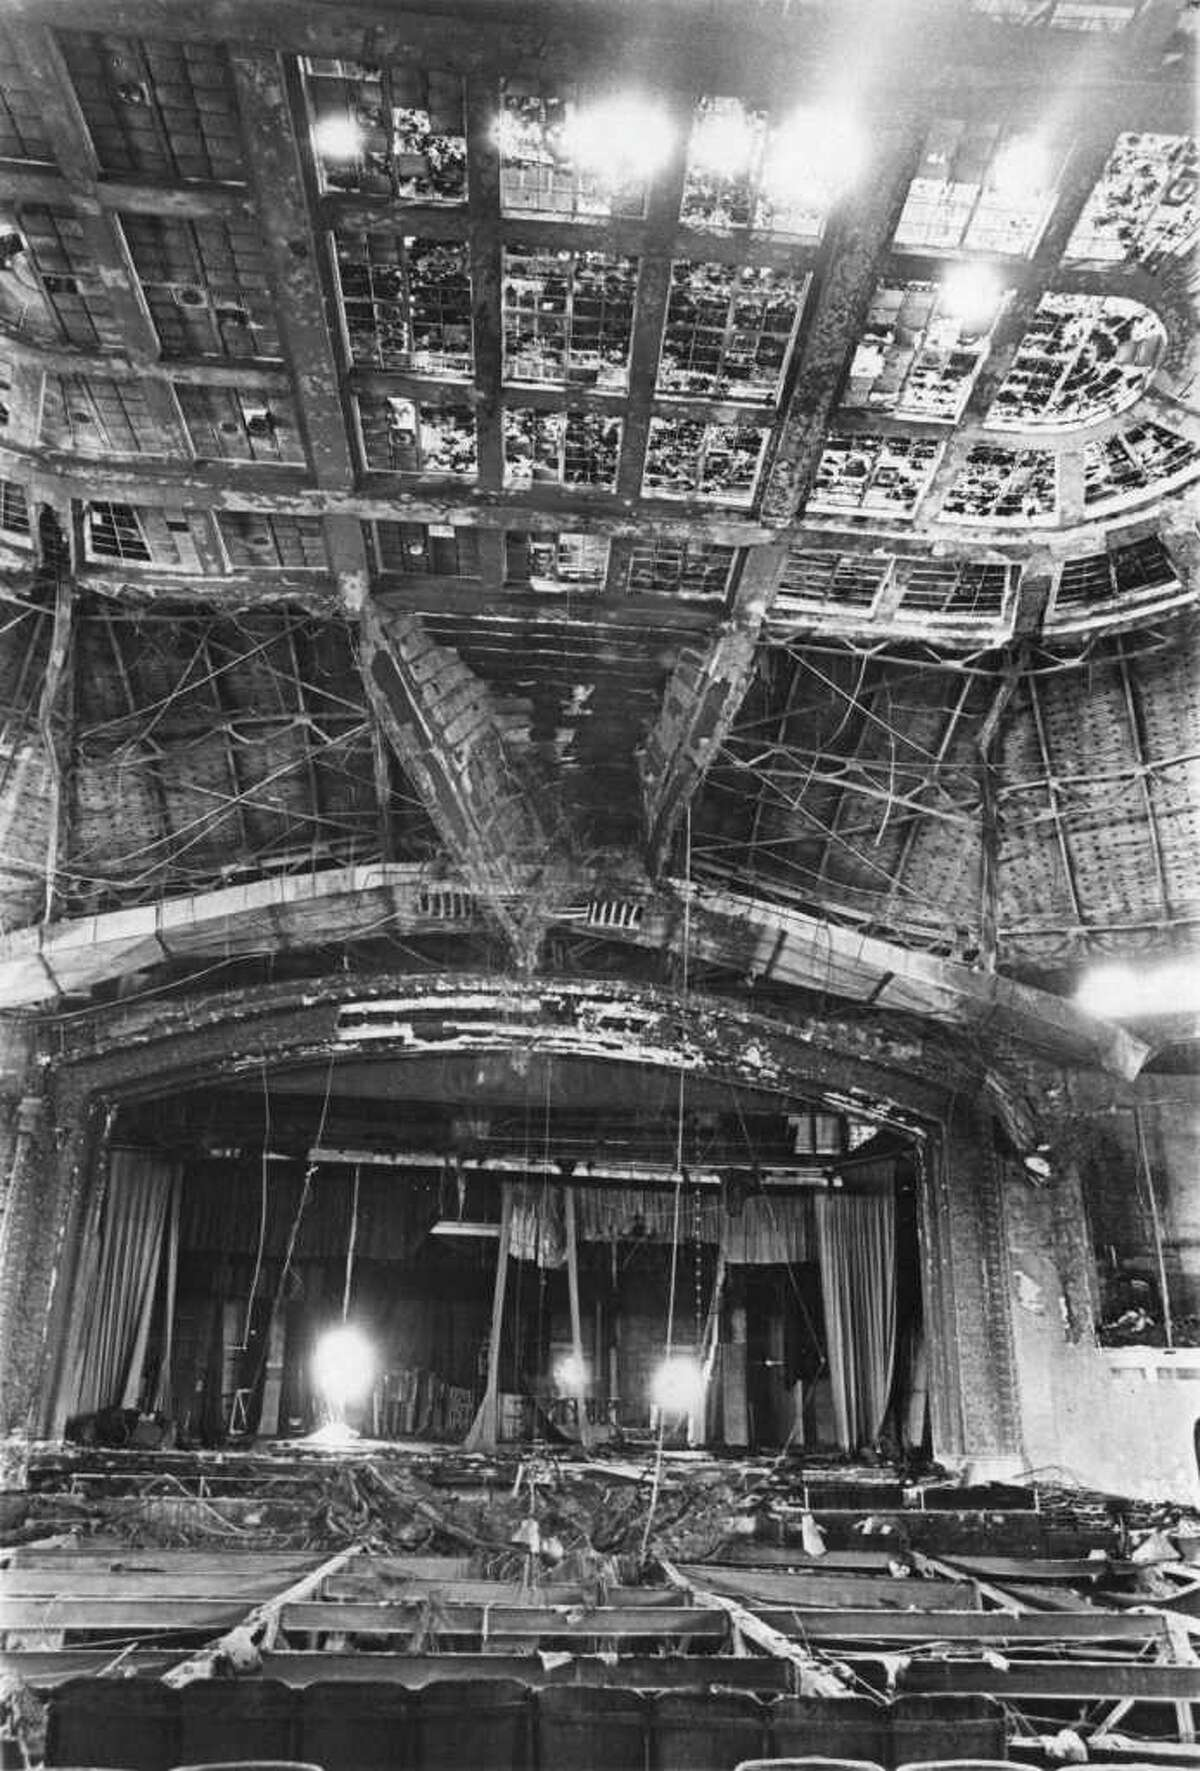 Municipal Auditorium is seen in this 1979 Express-News file photo after a fire gutted the downtown San Antonio facility. The view is looking from the back of the auditorium toward the stage at the front.